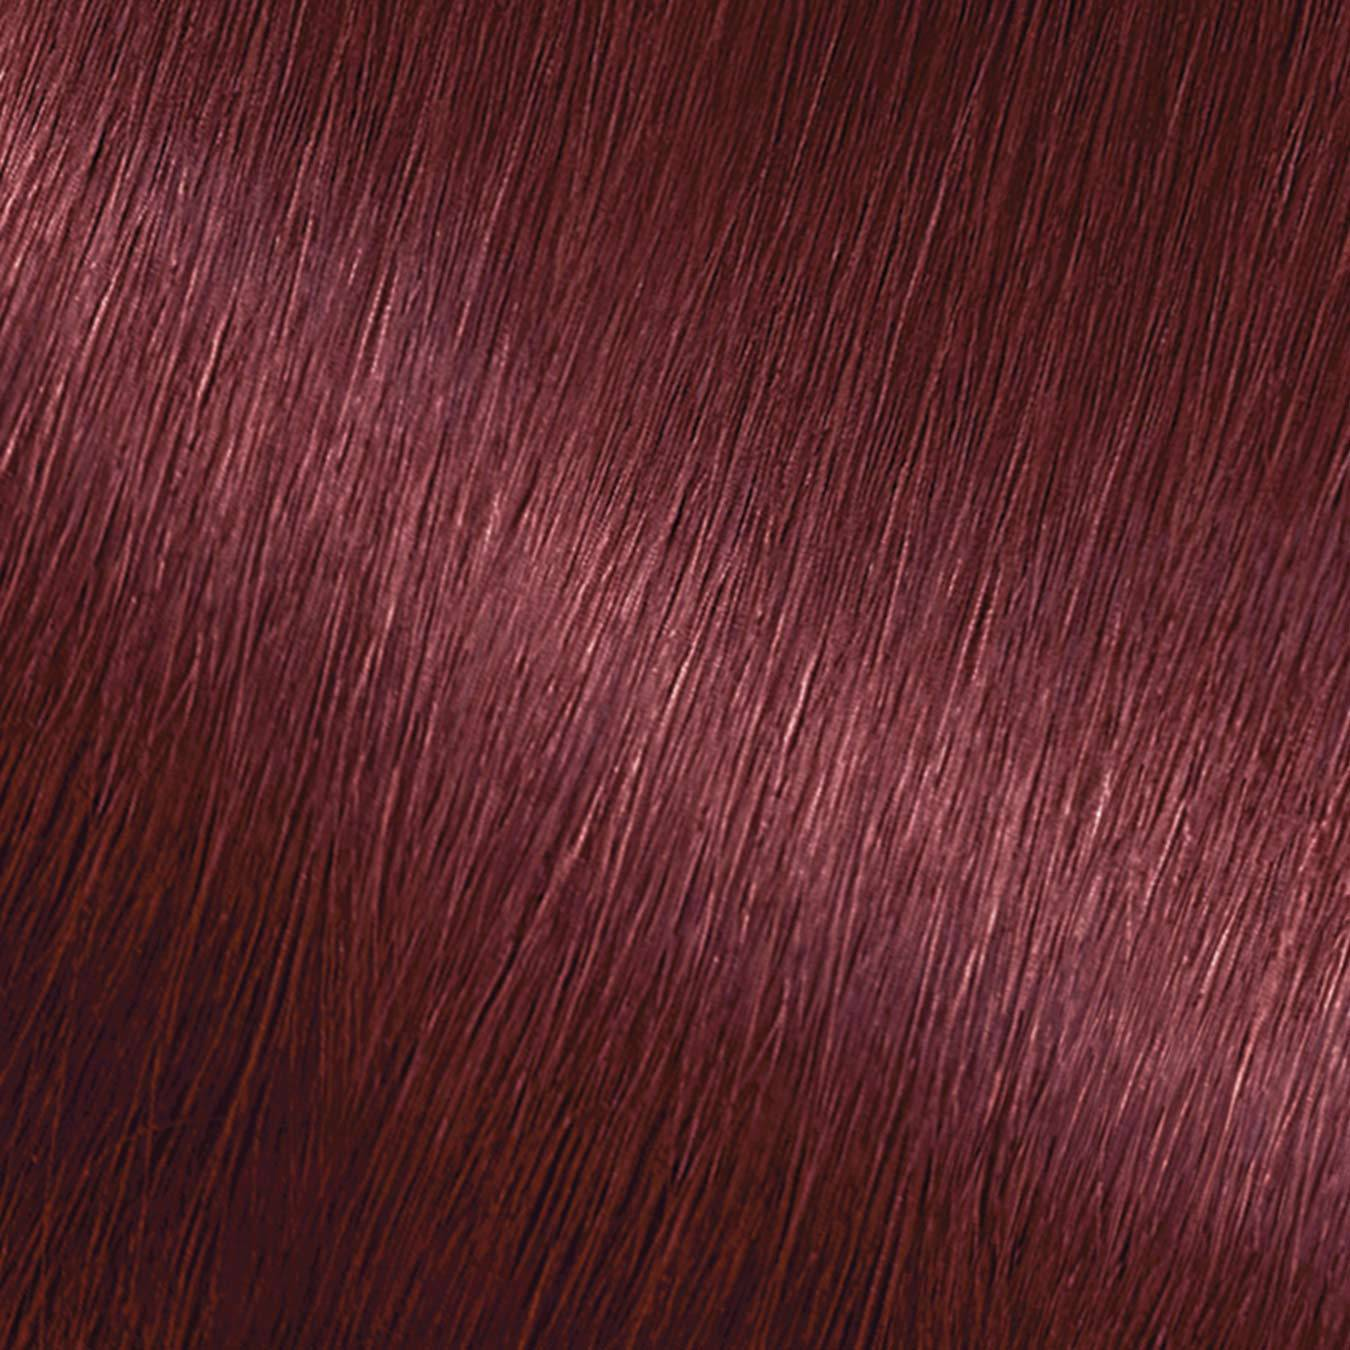 Hair Swatch of Nutrisse Crème 52 - Strawberry Jam.